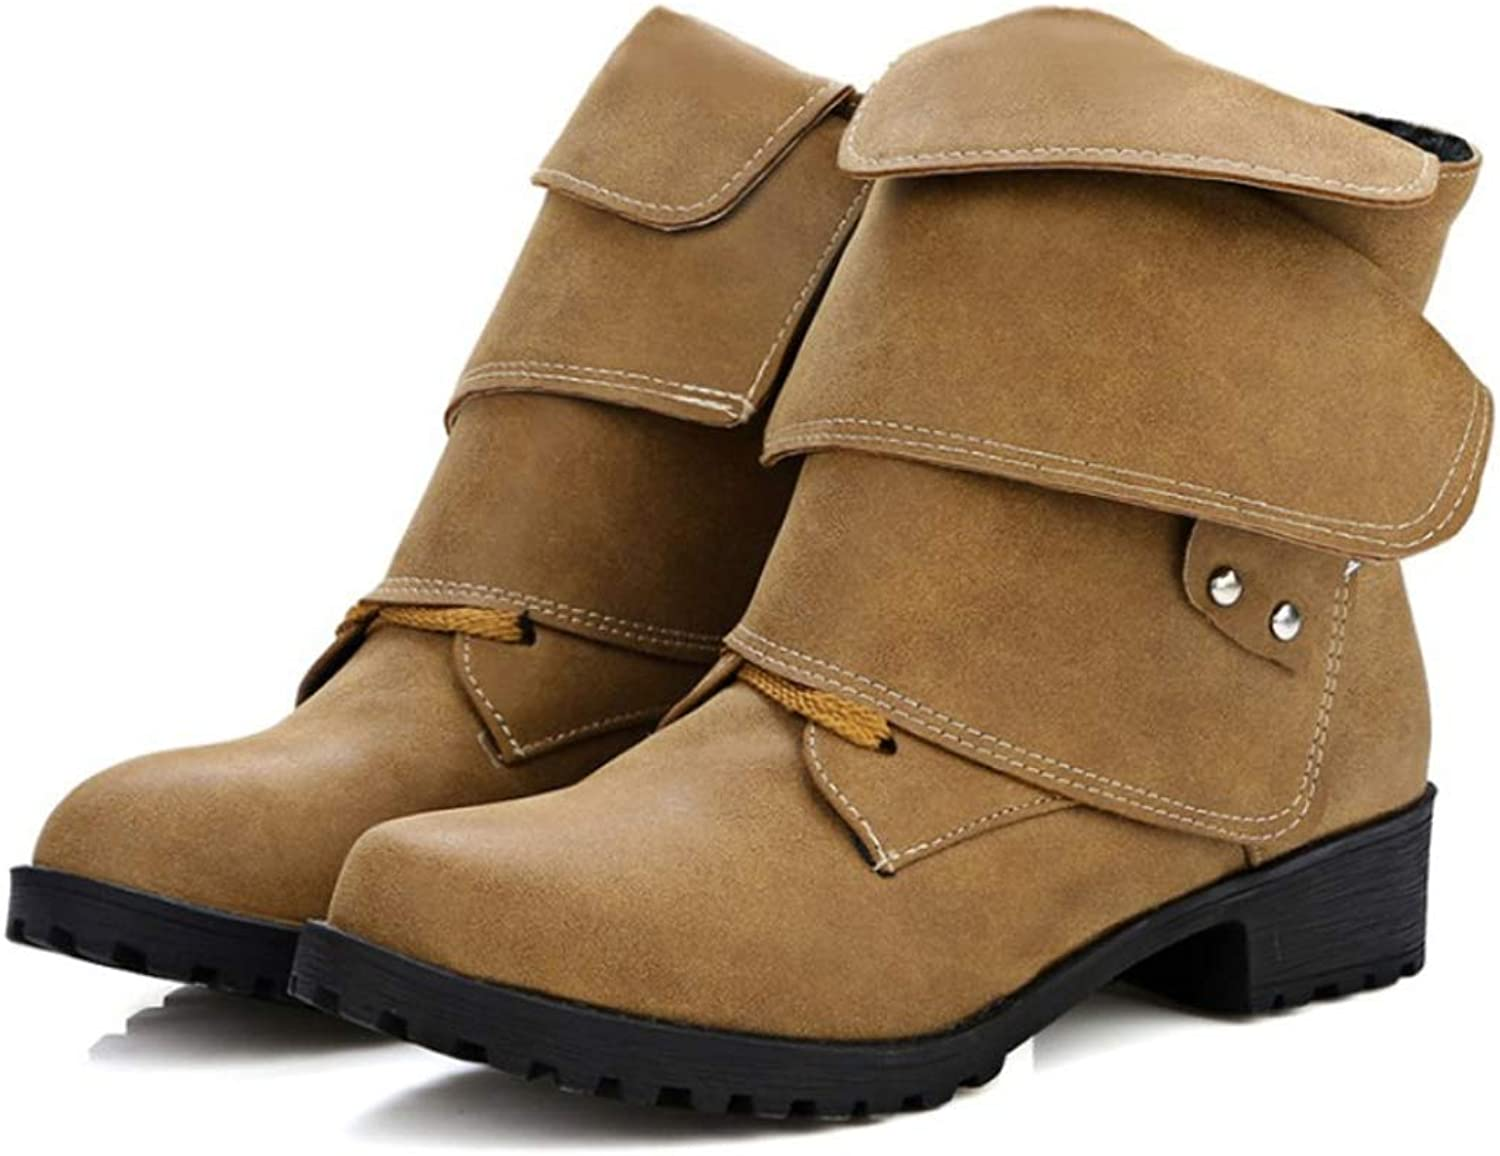 Women's shoes Flat Heel Ankle Boots Retro Martin Boots Knight Boots Large Size